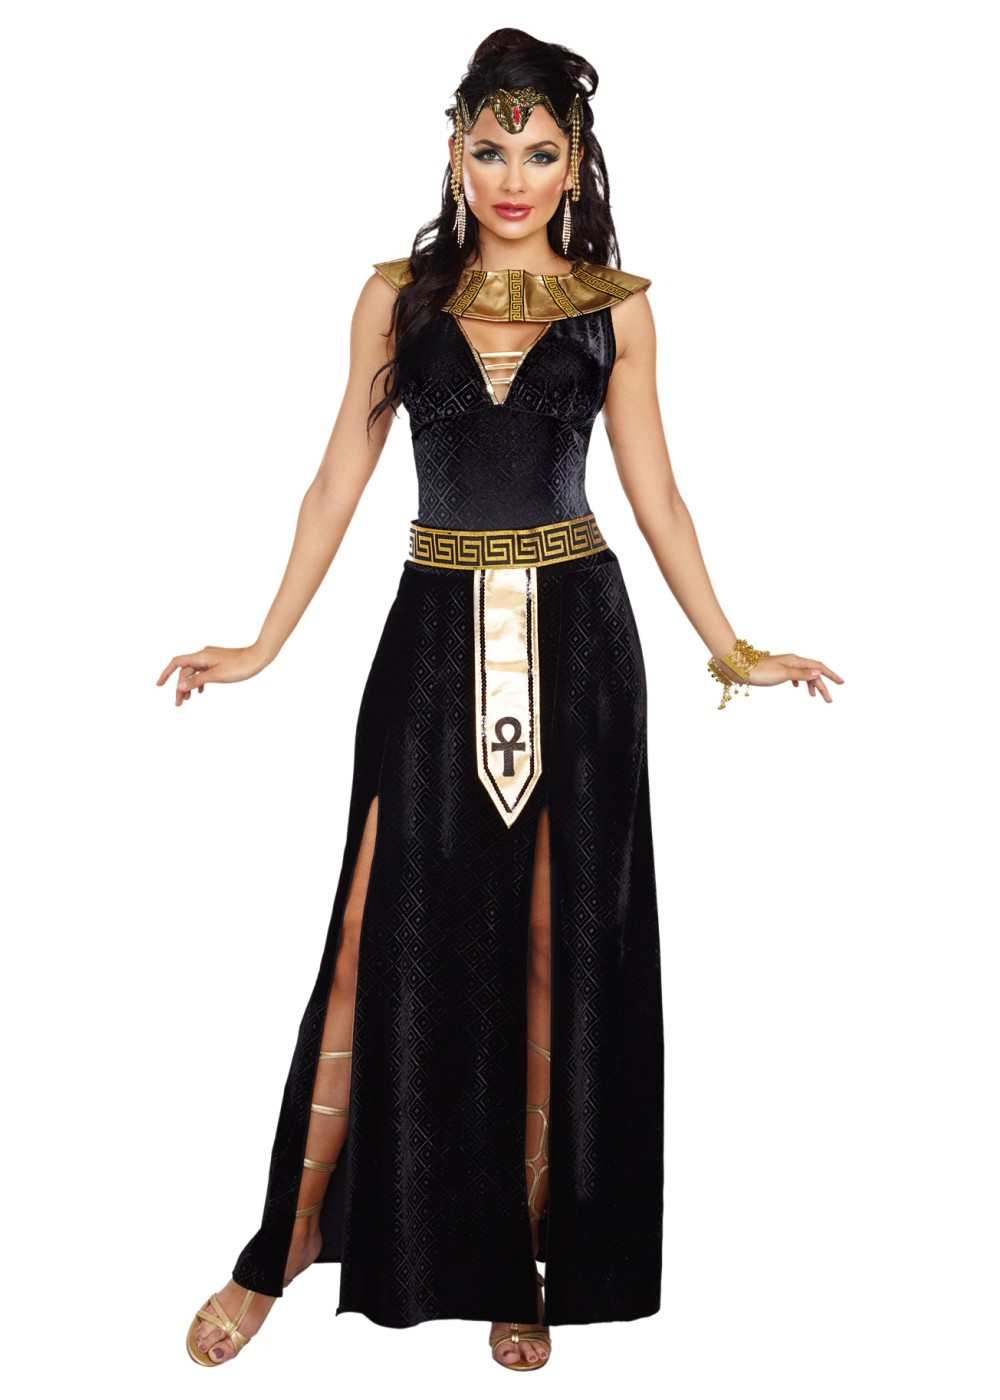 exquisite cleopatra womens egyptian costume egyptian costumes men, women, boys & girls egyptian dress,Womens Clothing In Egypt